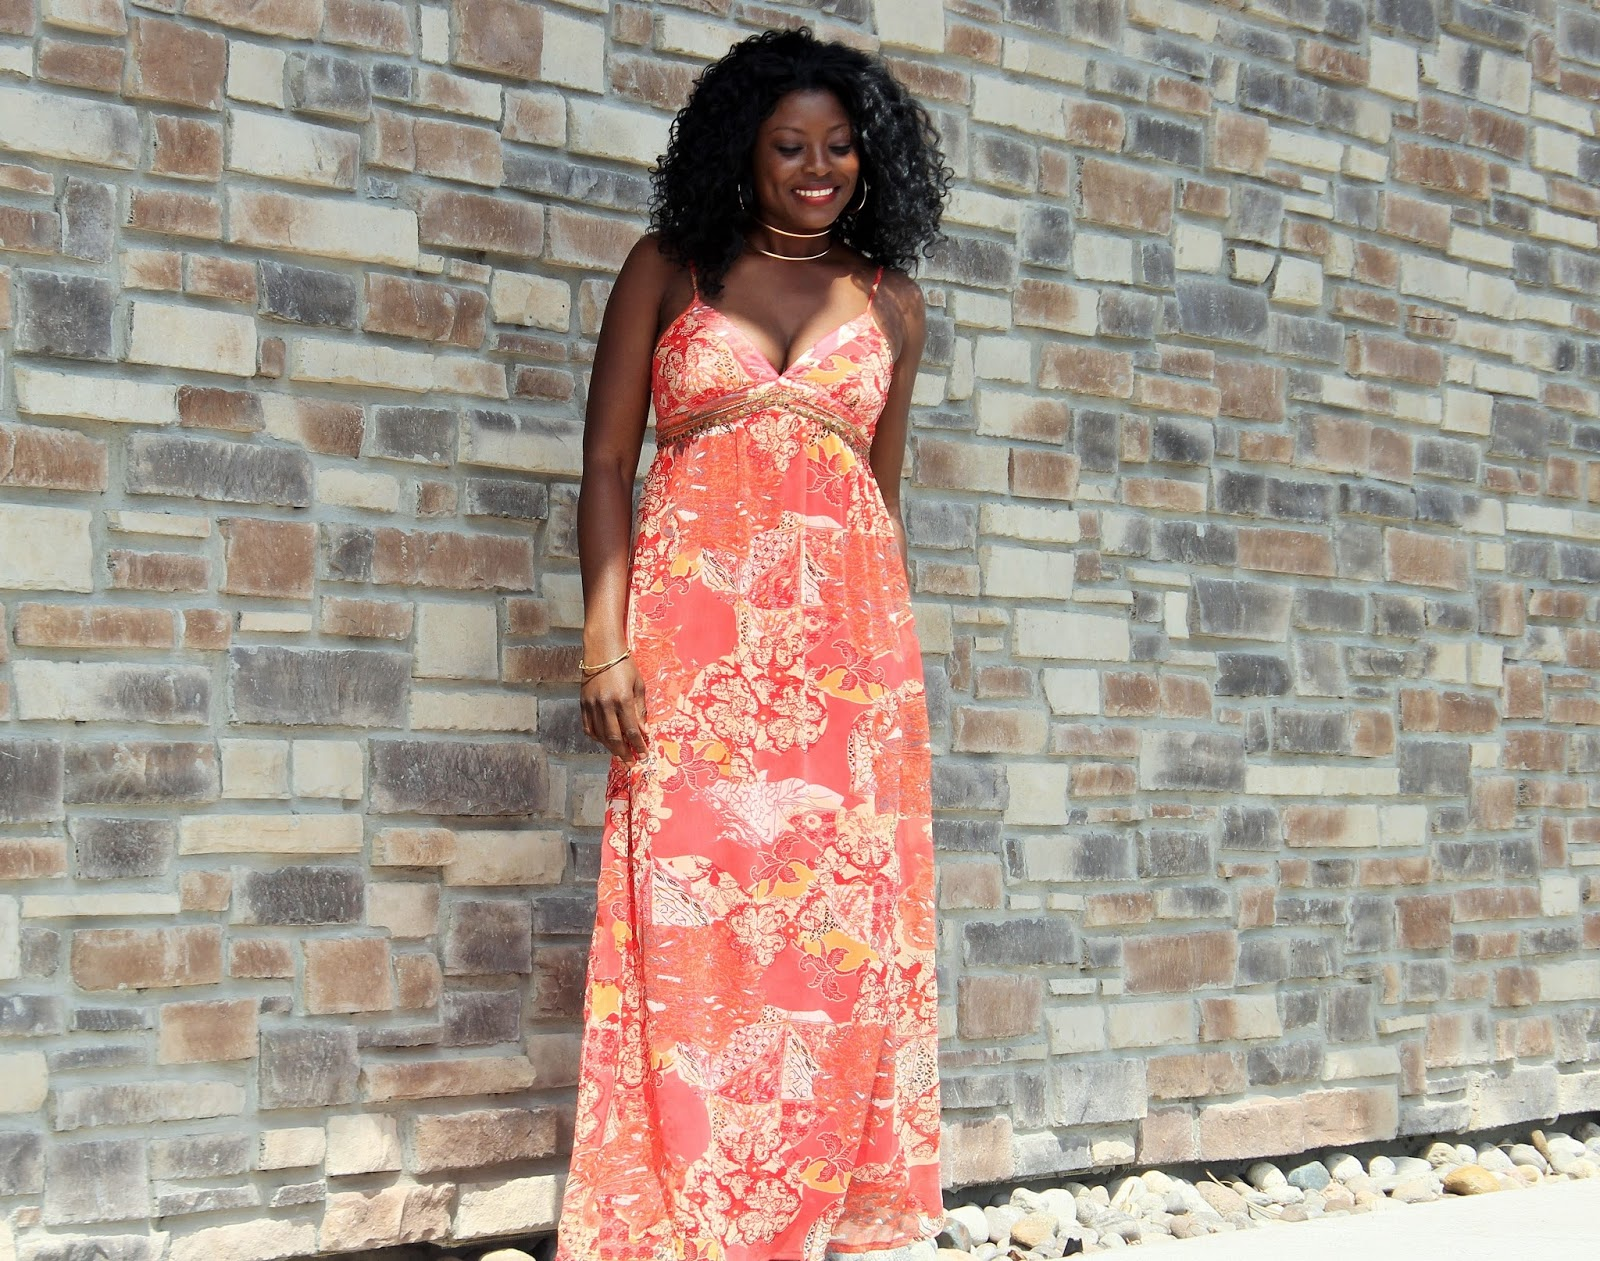 MAXI DRESS: THE CHOSEN ONE FOR A SUMMER STAYCATION AT ALOFT